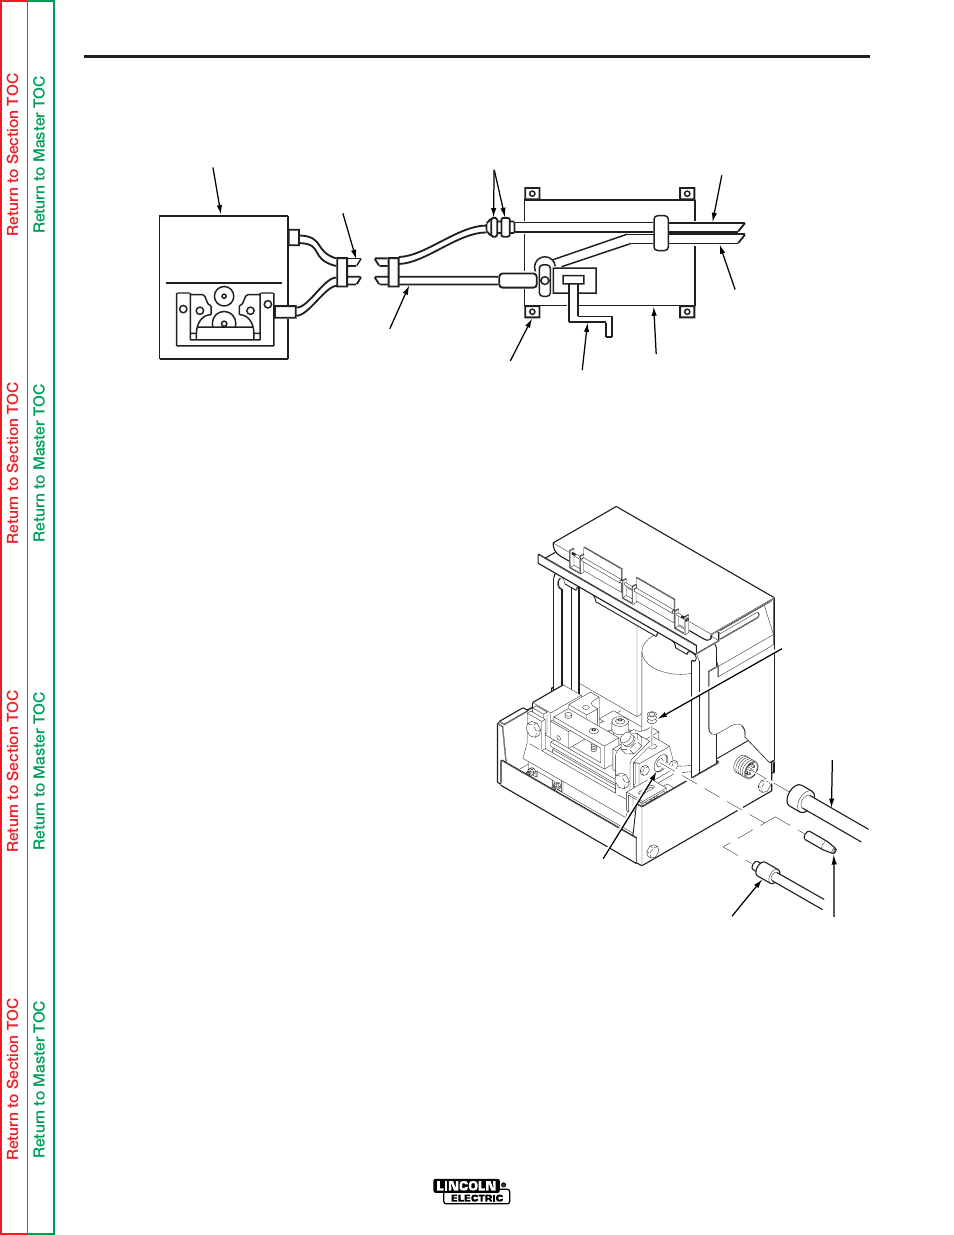 Installation Lincoln Electric Ln 8 Svm132 A User Manual Page 22 Polarized Plug Wiring Diagram